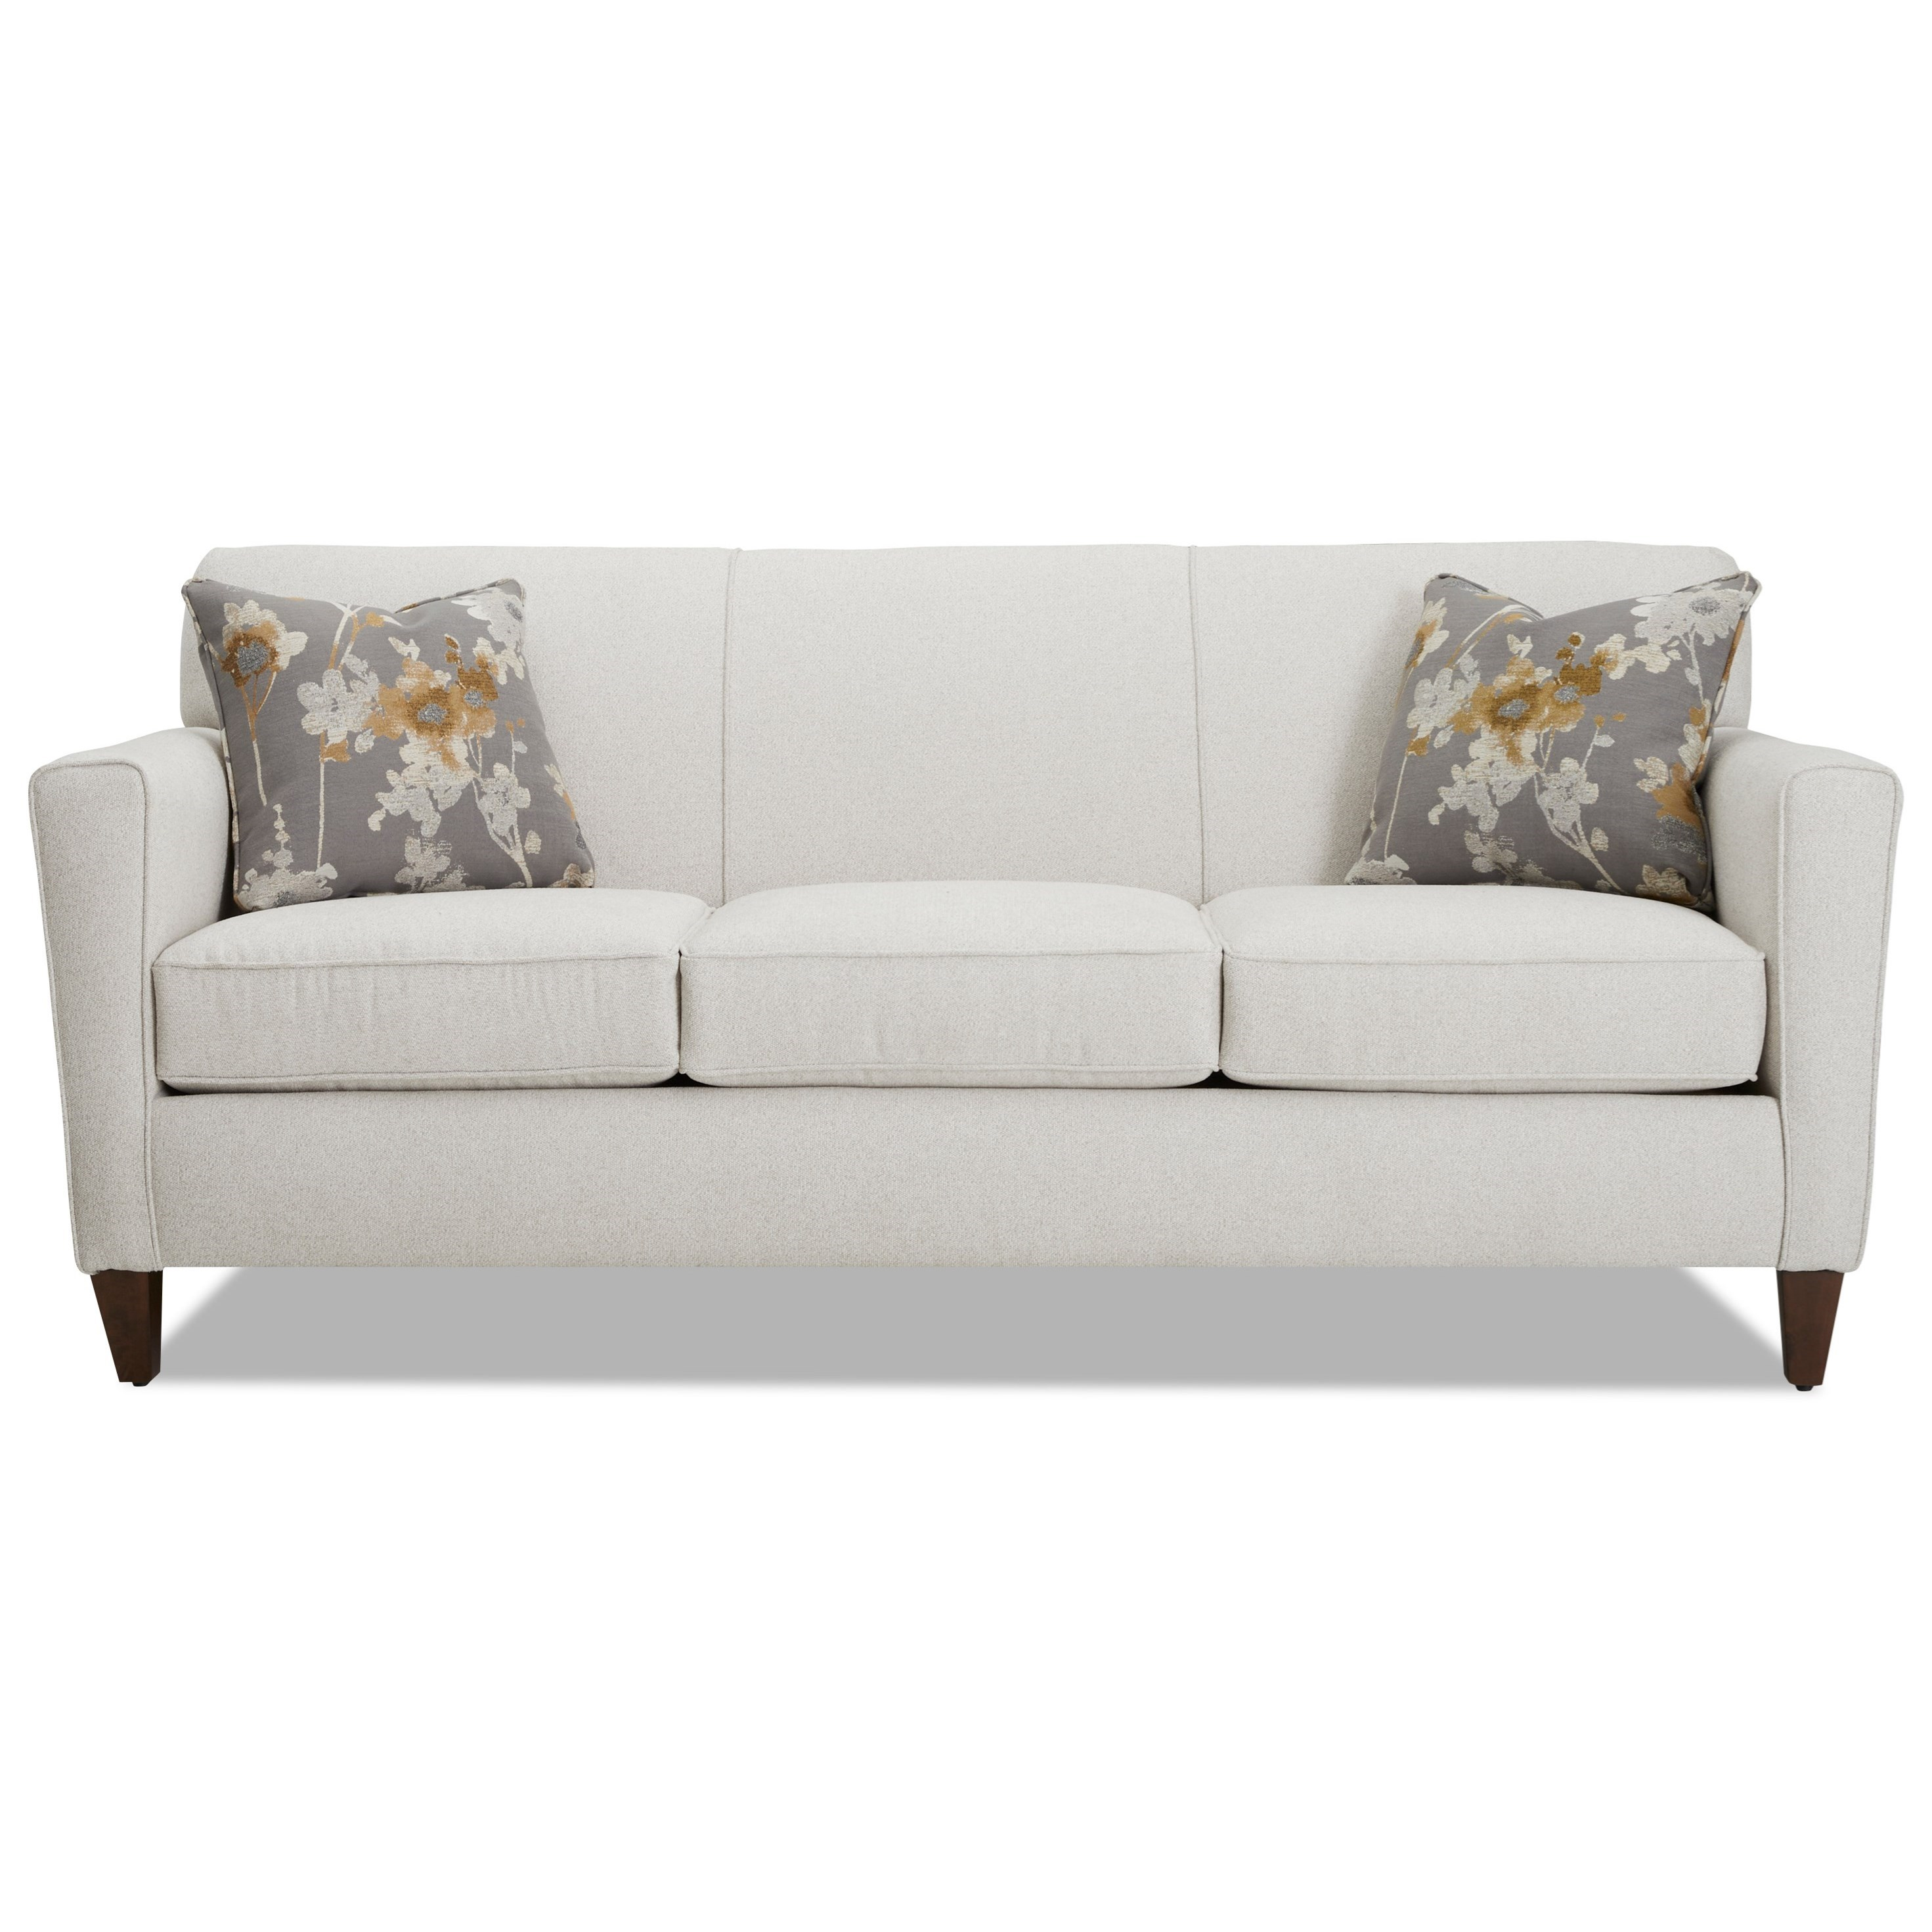 Getty Sofa by Klaussner at Northeast Factory Direct